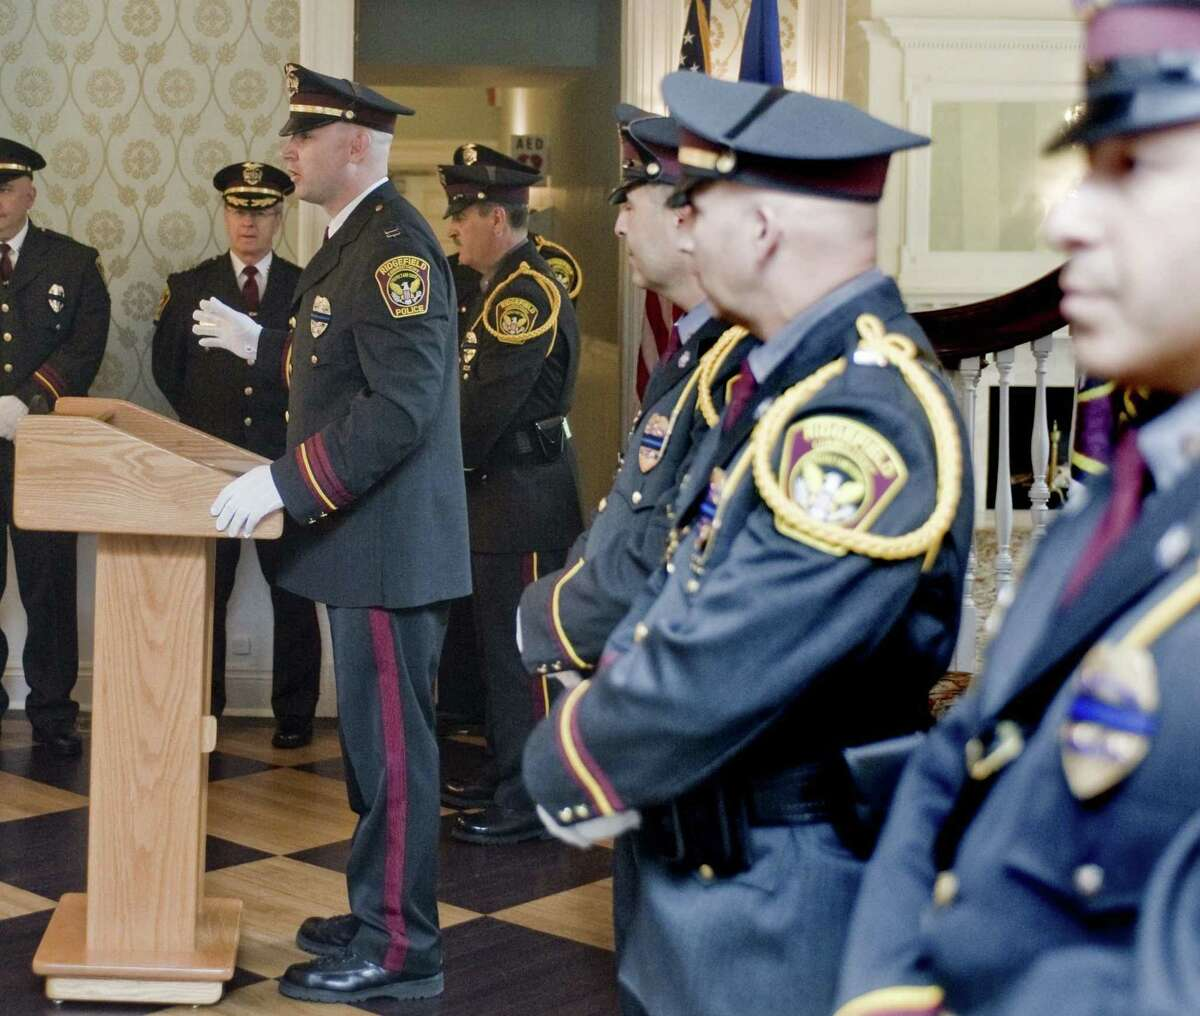 Ridgefield Police Captain Jeffrey Kreitz speaks at the department's annual Memorial Ceremony at The Lounsbury House in Ridgefield to honor and pay tribute to the deceased members of the department. For a listing of Memorial Day events in the Danbury area, see page A3